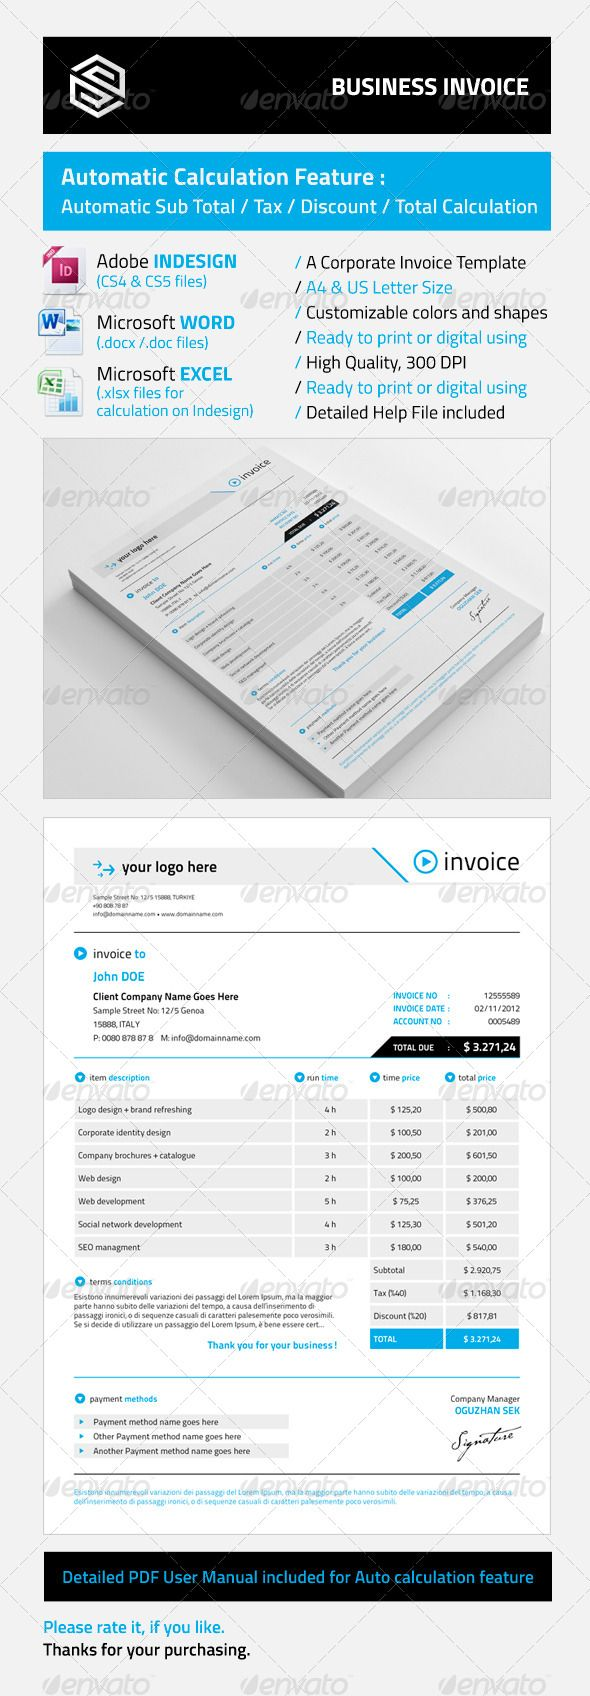 Business Invoice  Adobe Indesign Adobe And Template